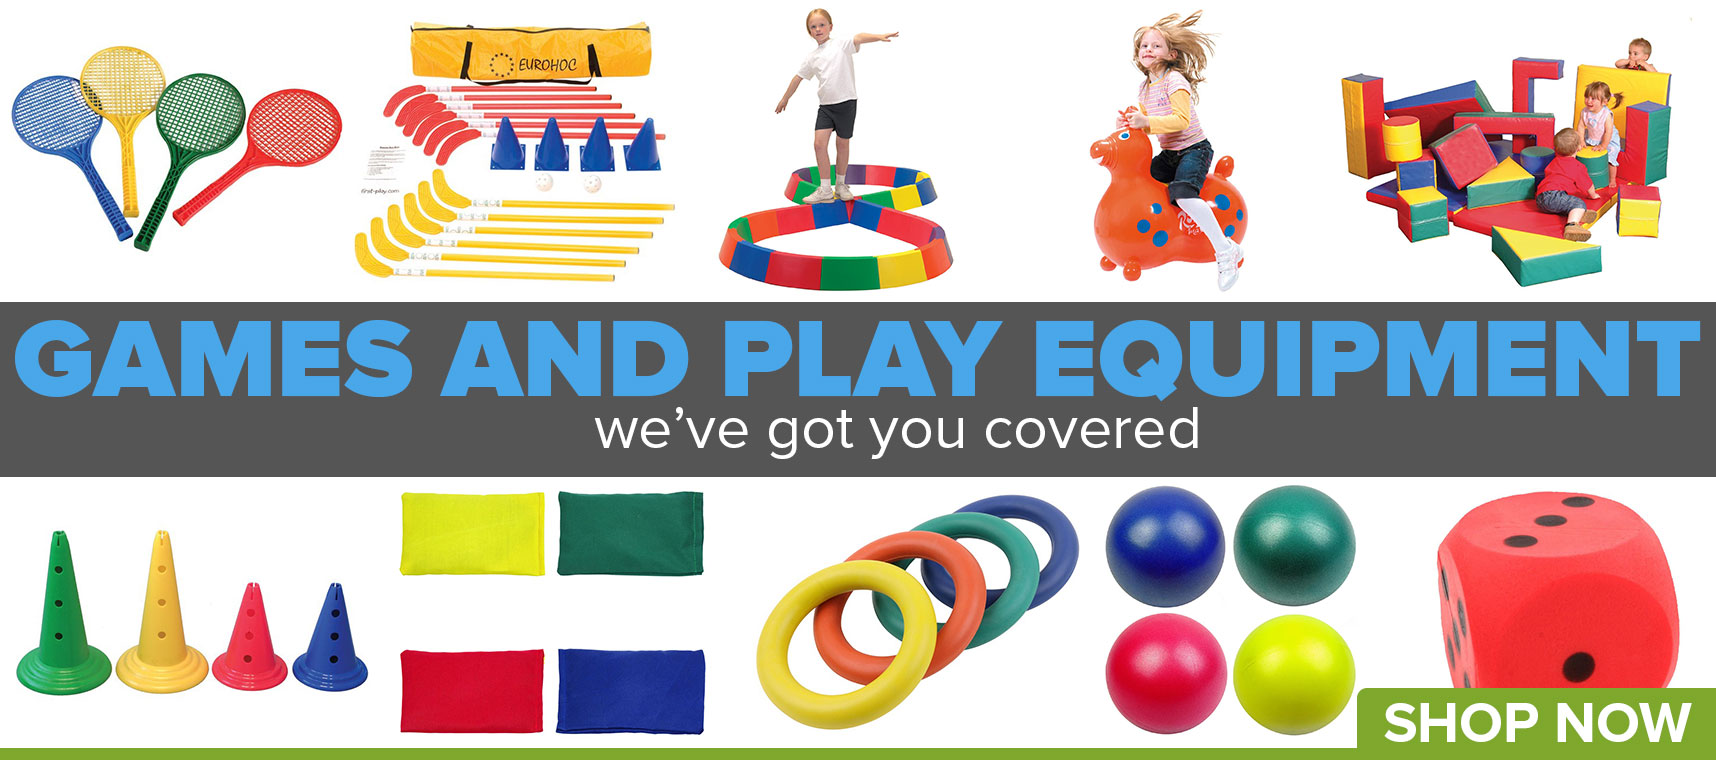 Games and Play Equipment